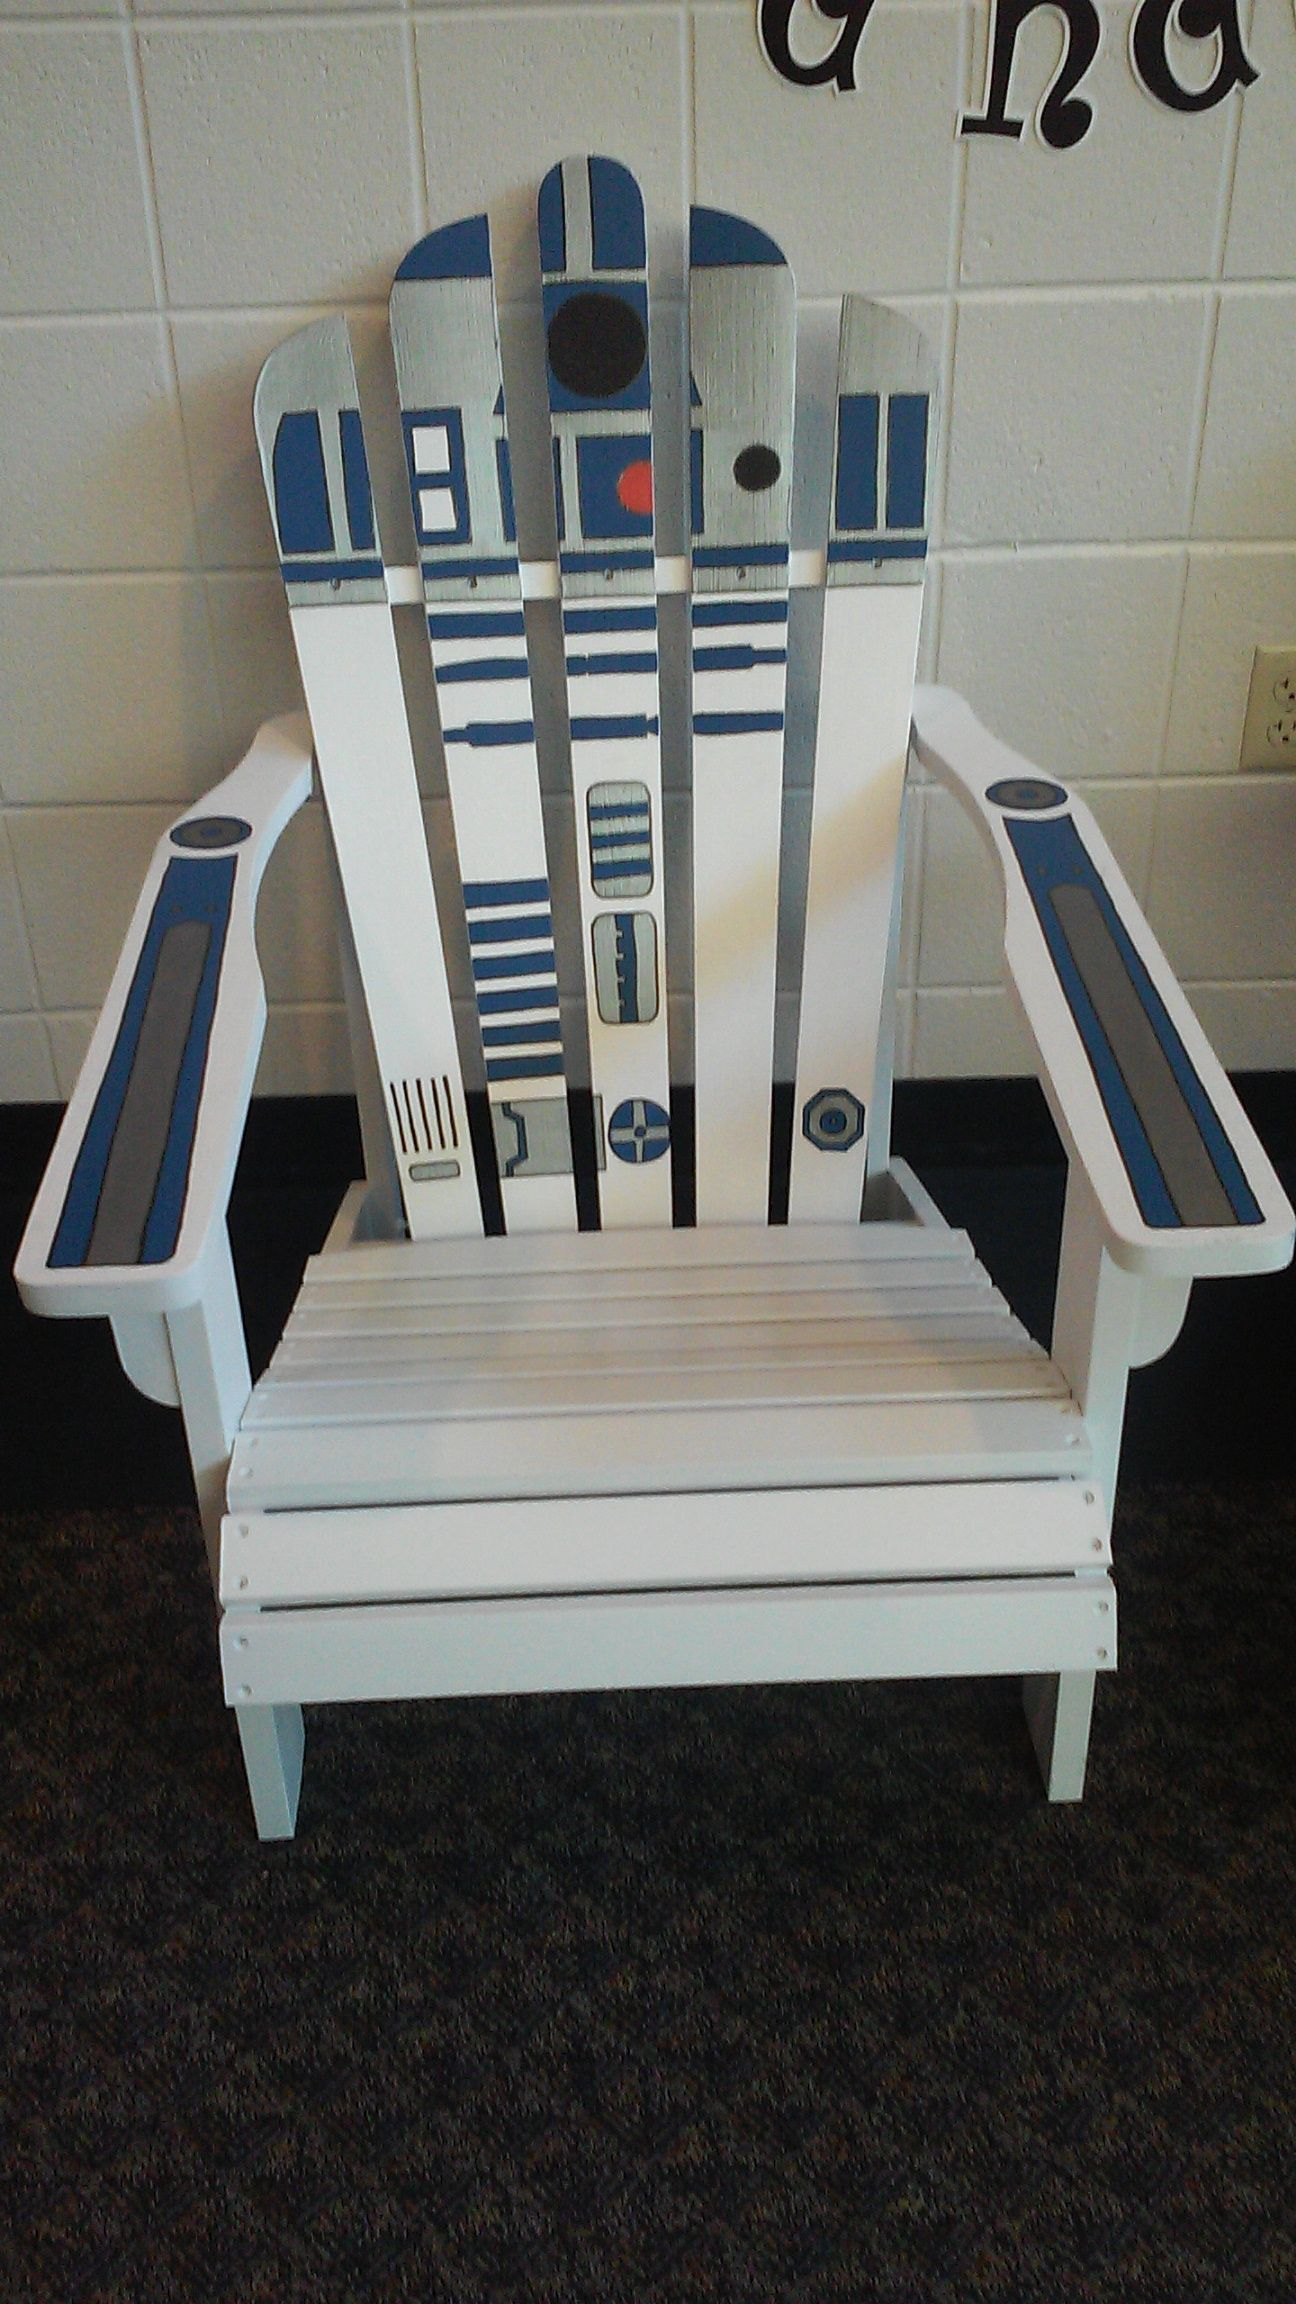 Pin by mary ellen nyman on House Outdoor chairs, Outdoor